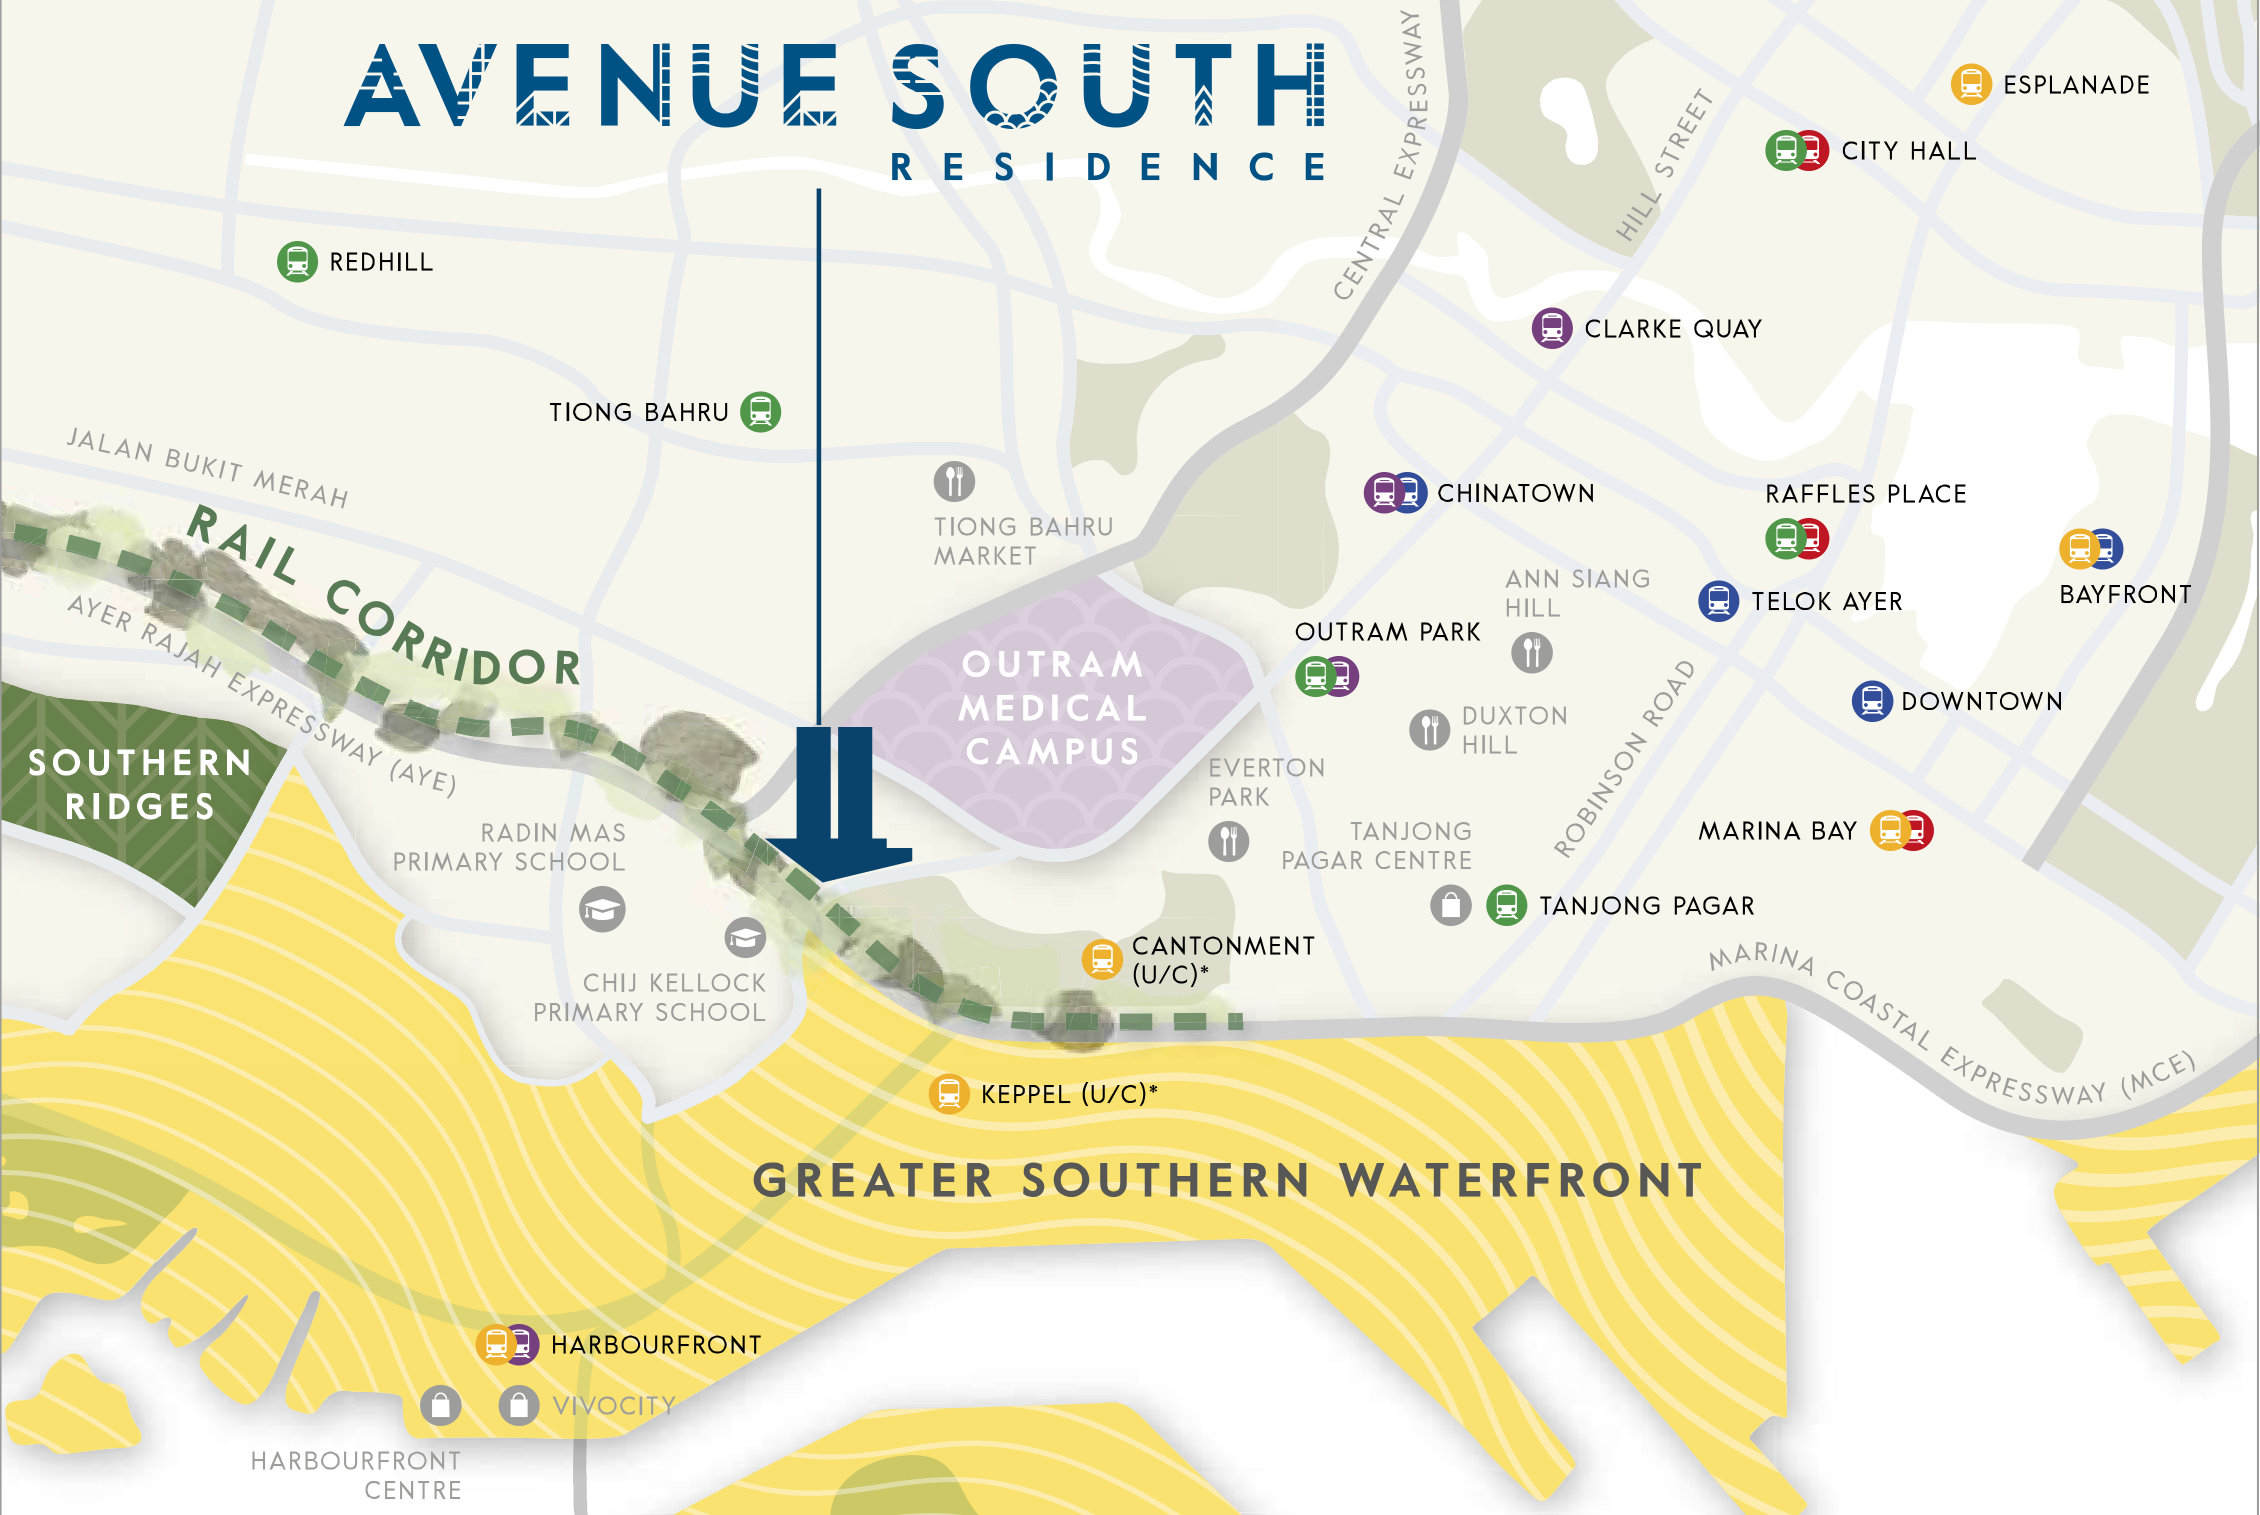 newlaunch.sg avenue south residence Map